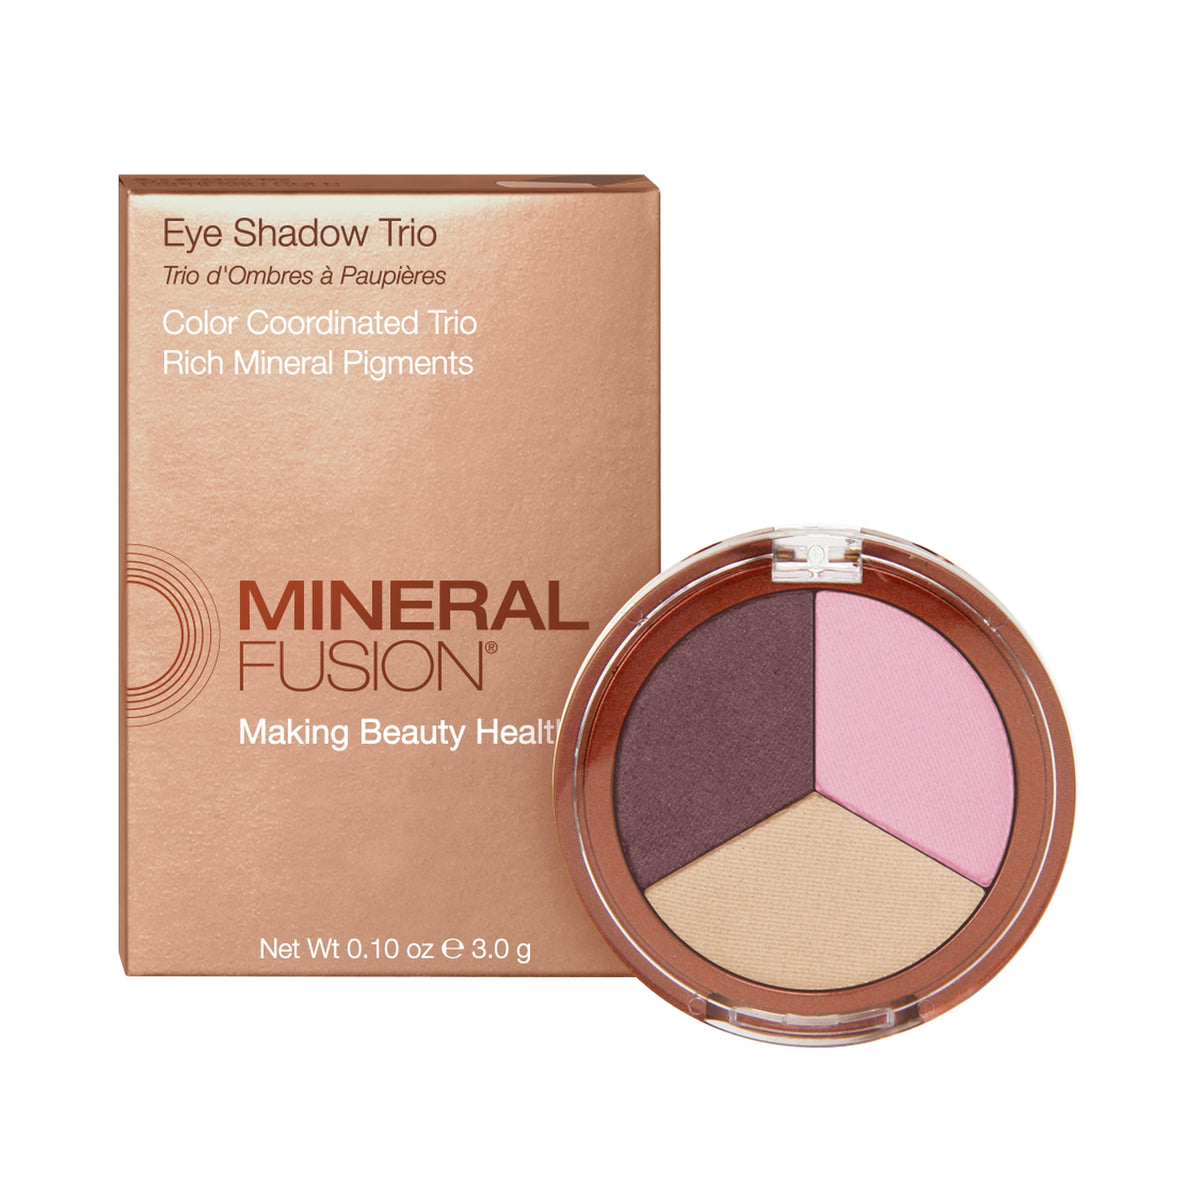 Mineral Fusion Eye Shadow Trio in Diversity